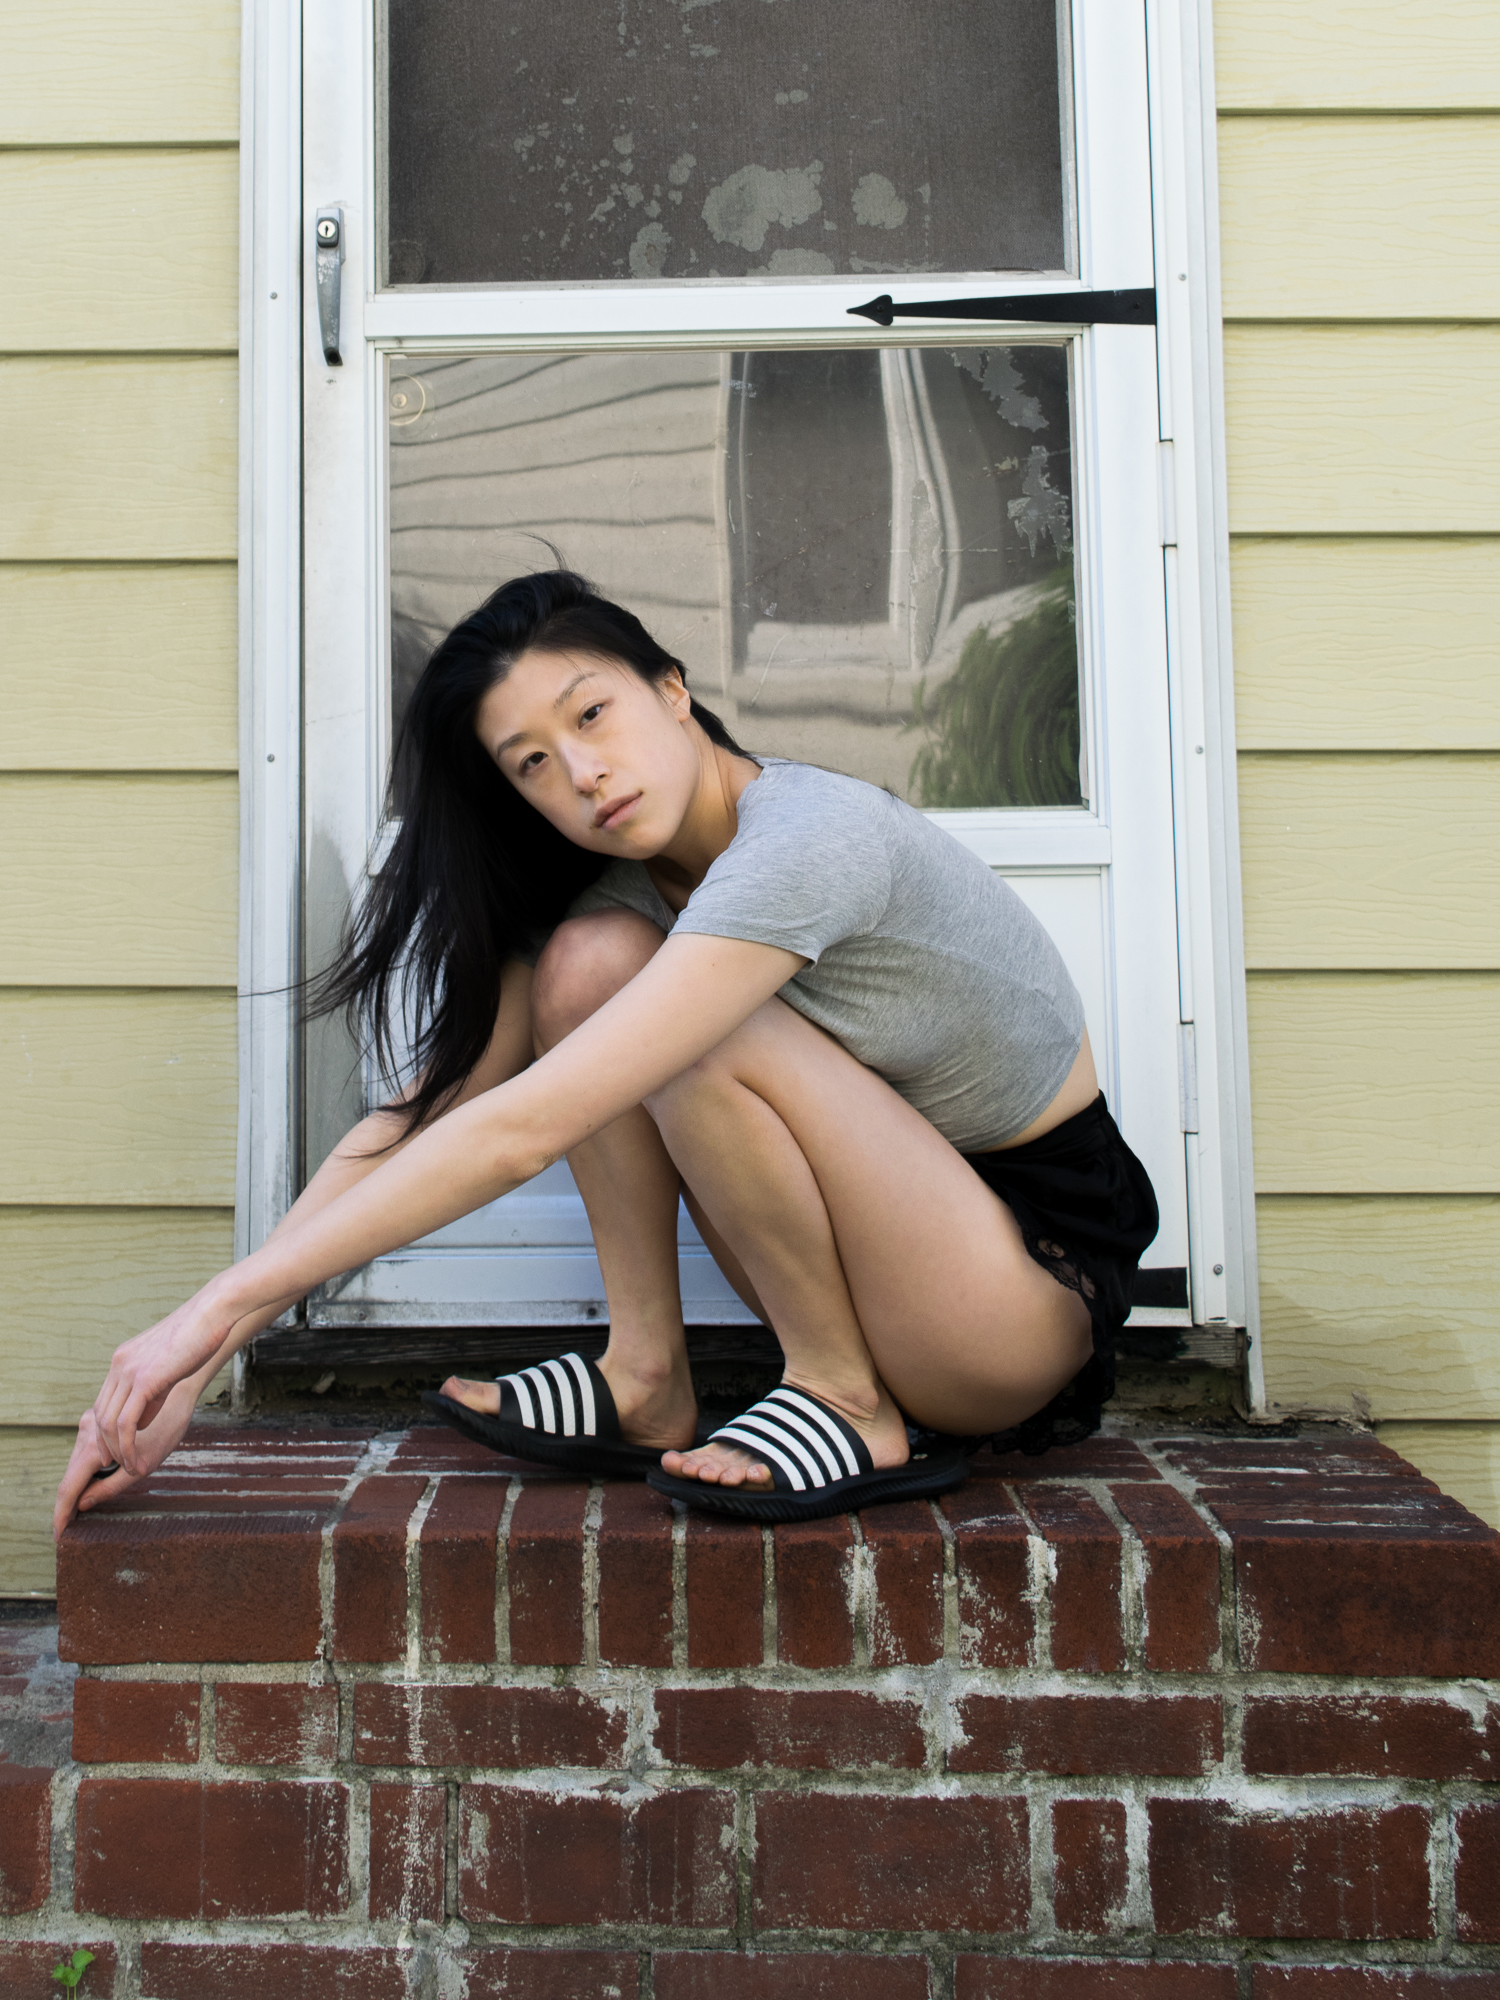 Female, east asian blogger in grey cropped t-shirt, lacy black shorts, black and white striped sandals, posing on brick stoop